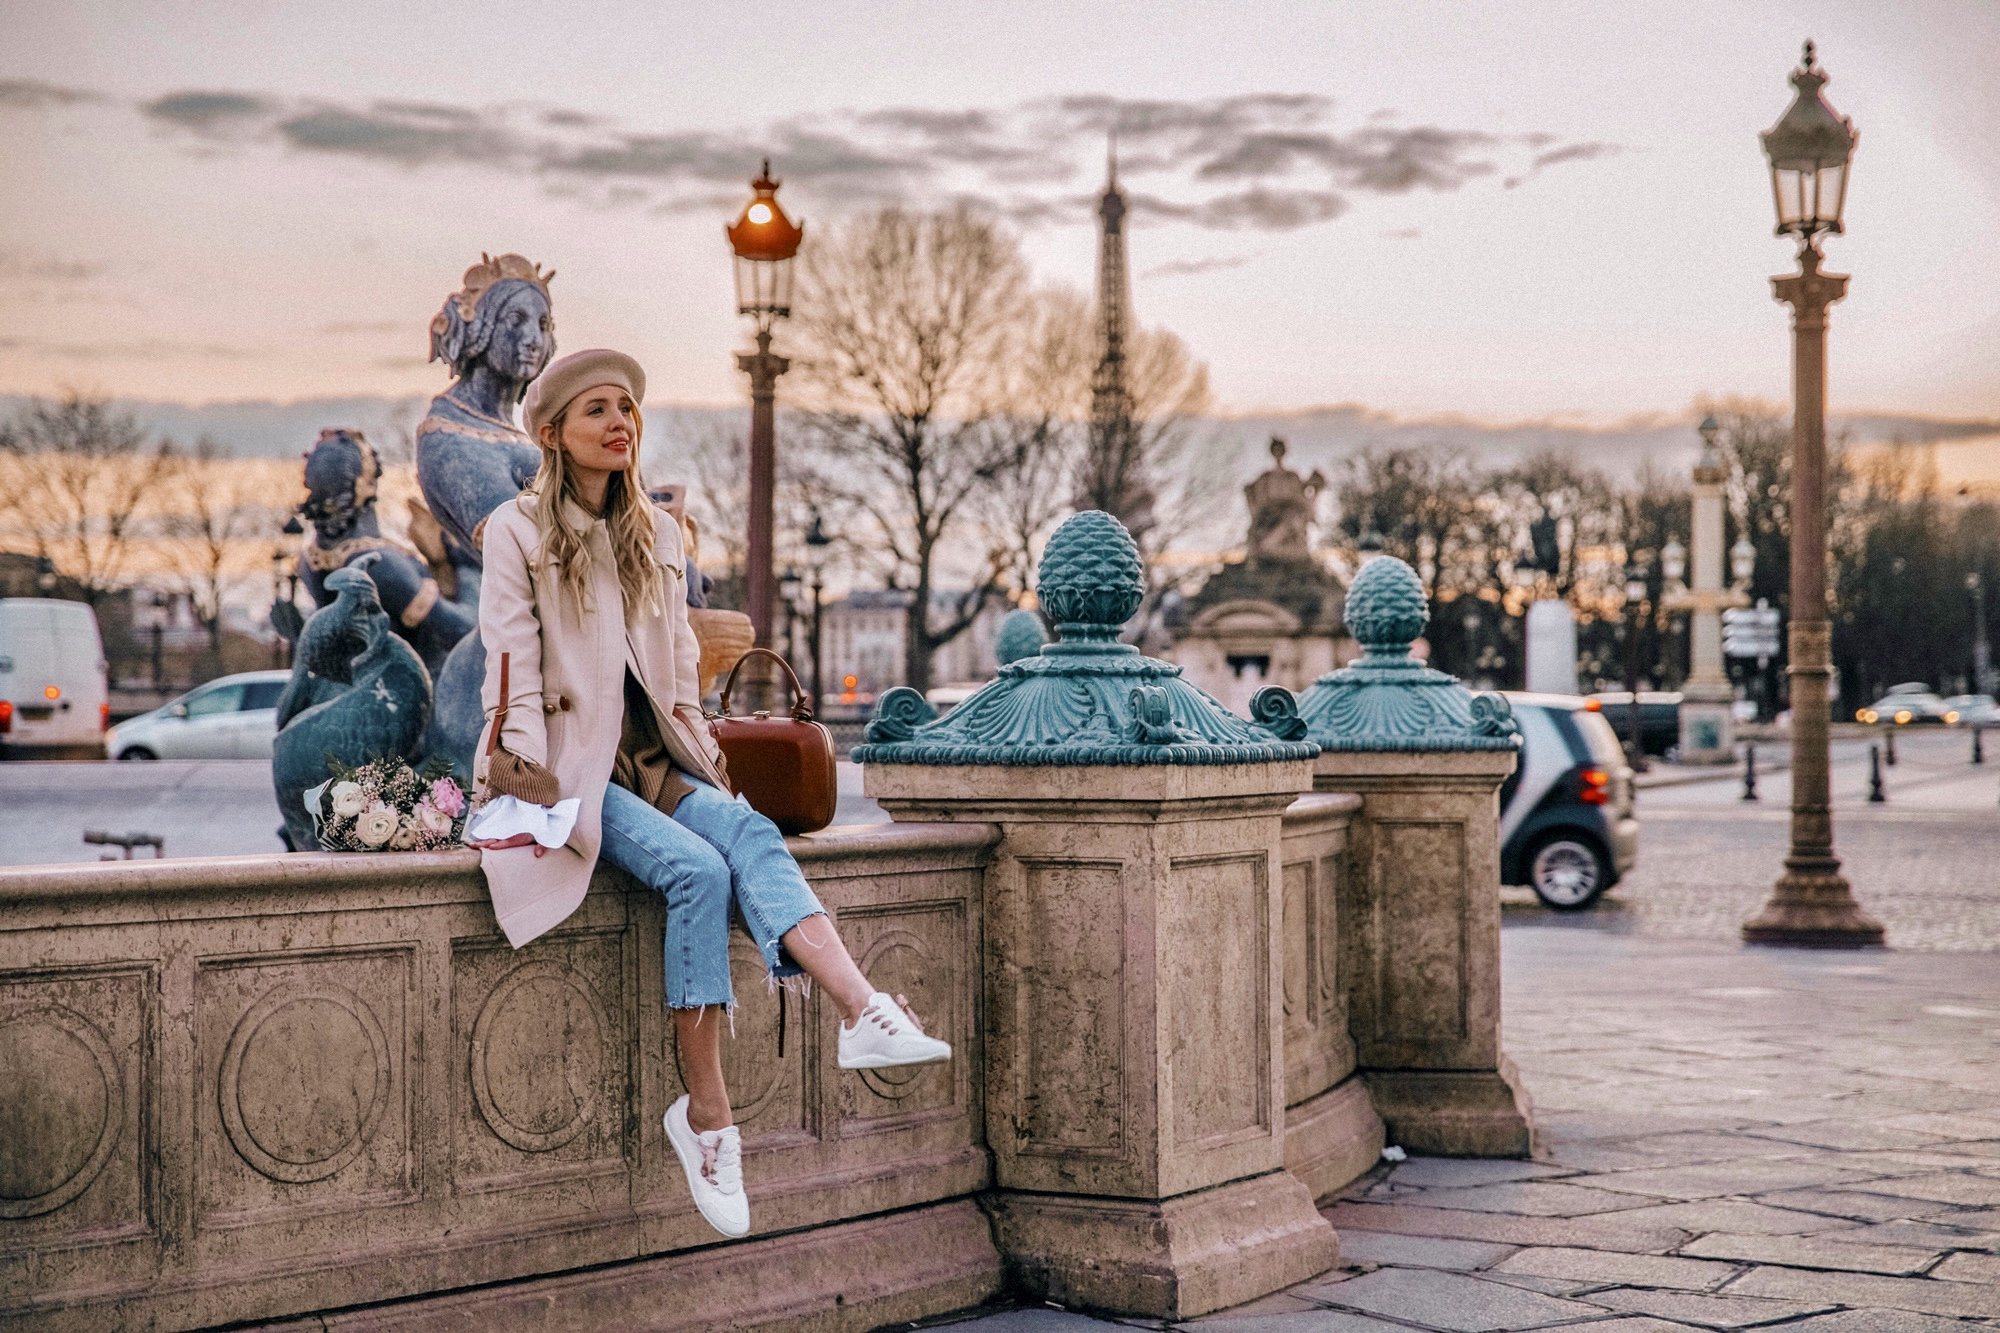 Place de la Concorde | Paris